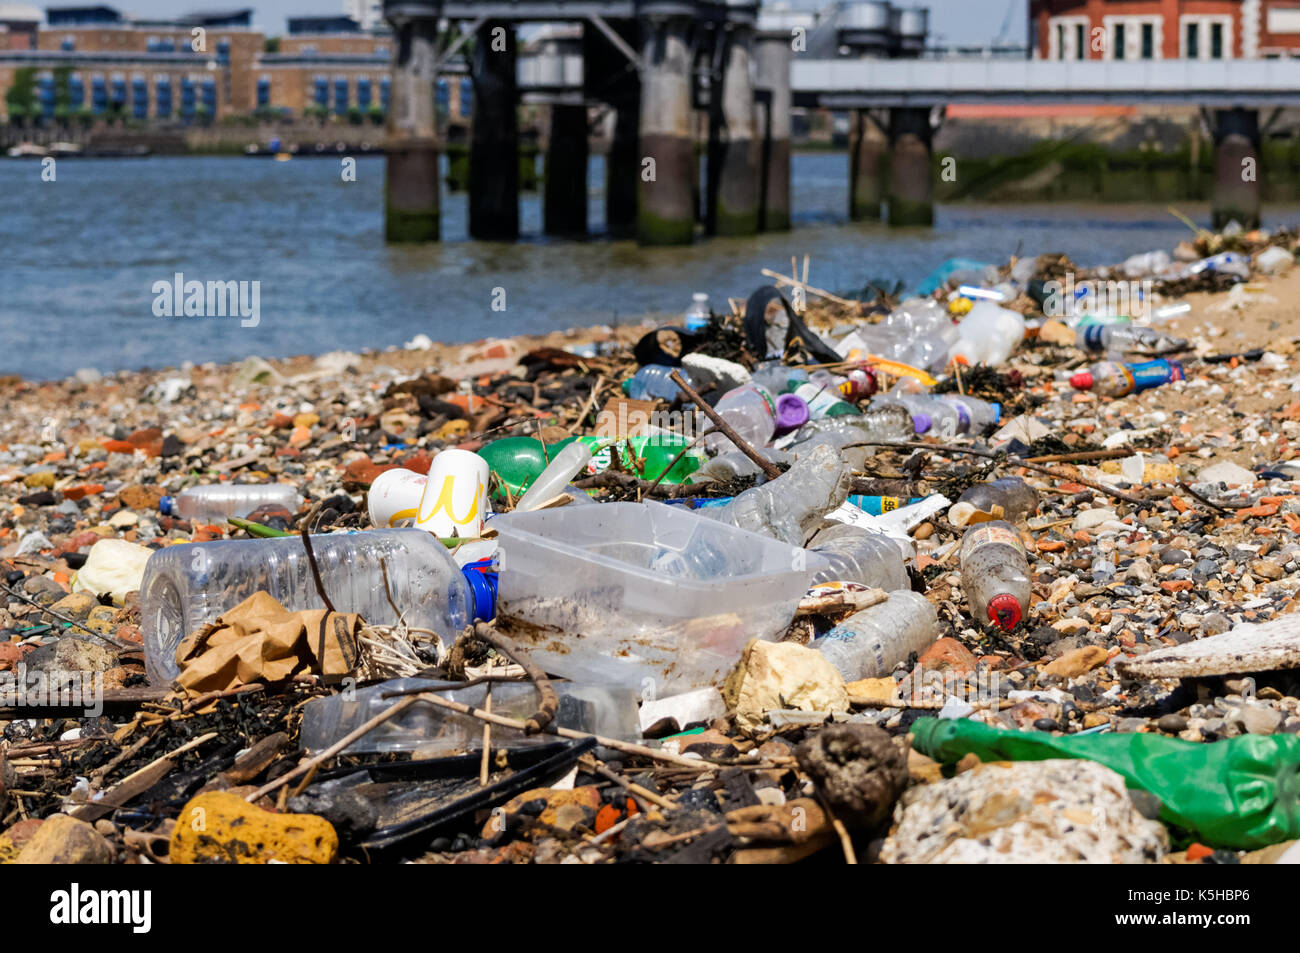 Plastic pollution on the bank of the River Thames, London England United Kingdom UK - Stock Image